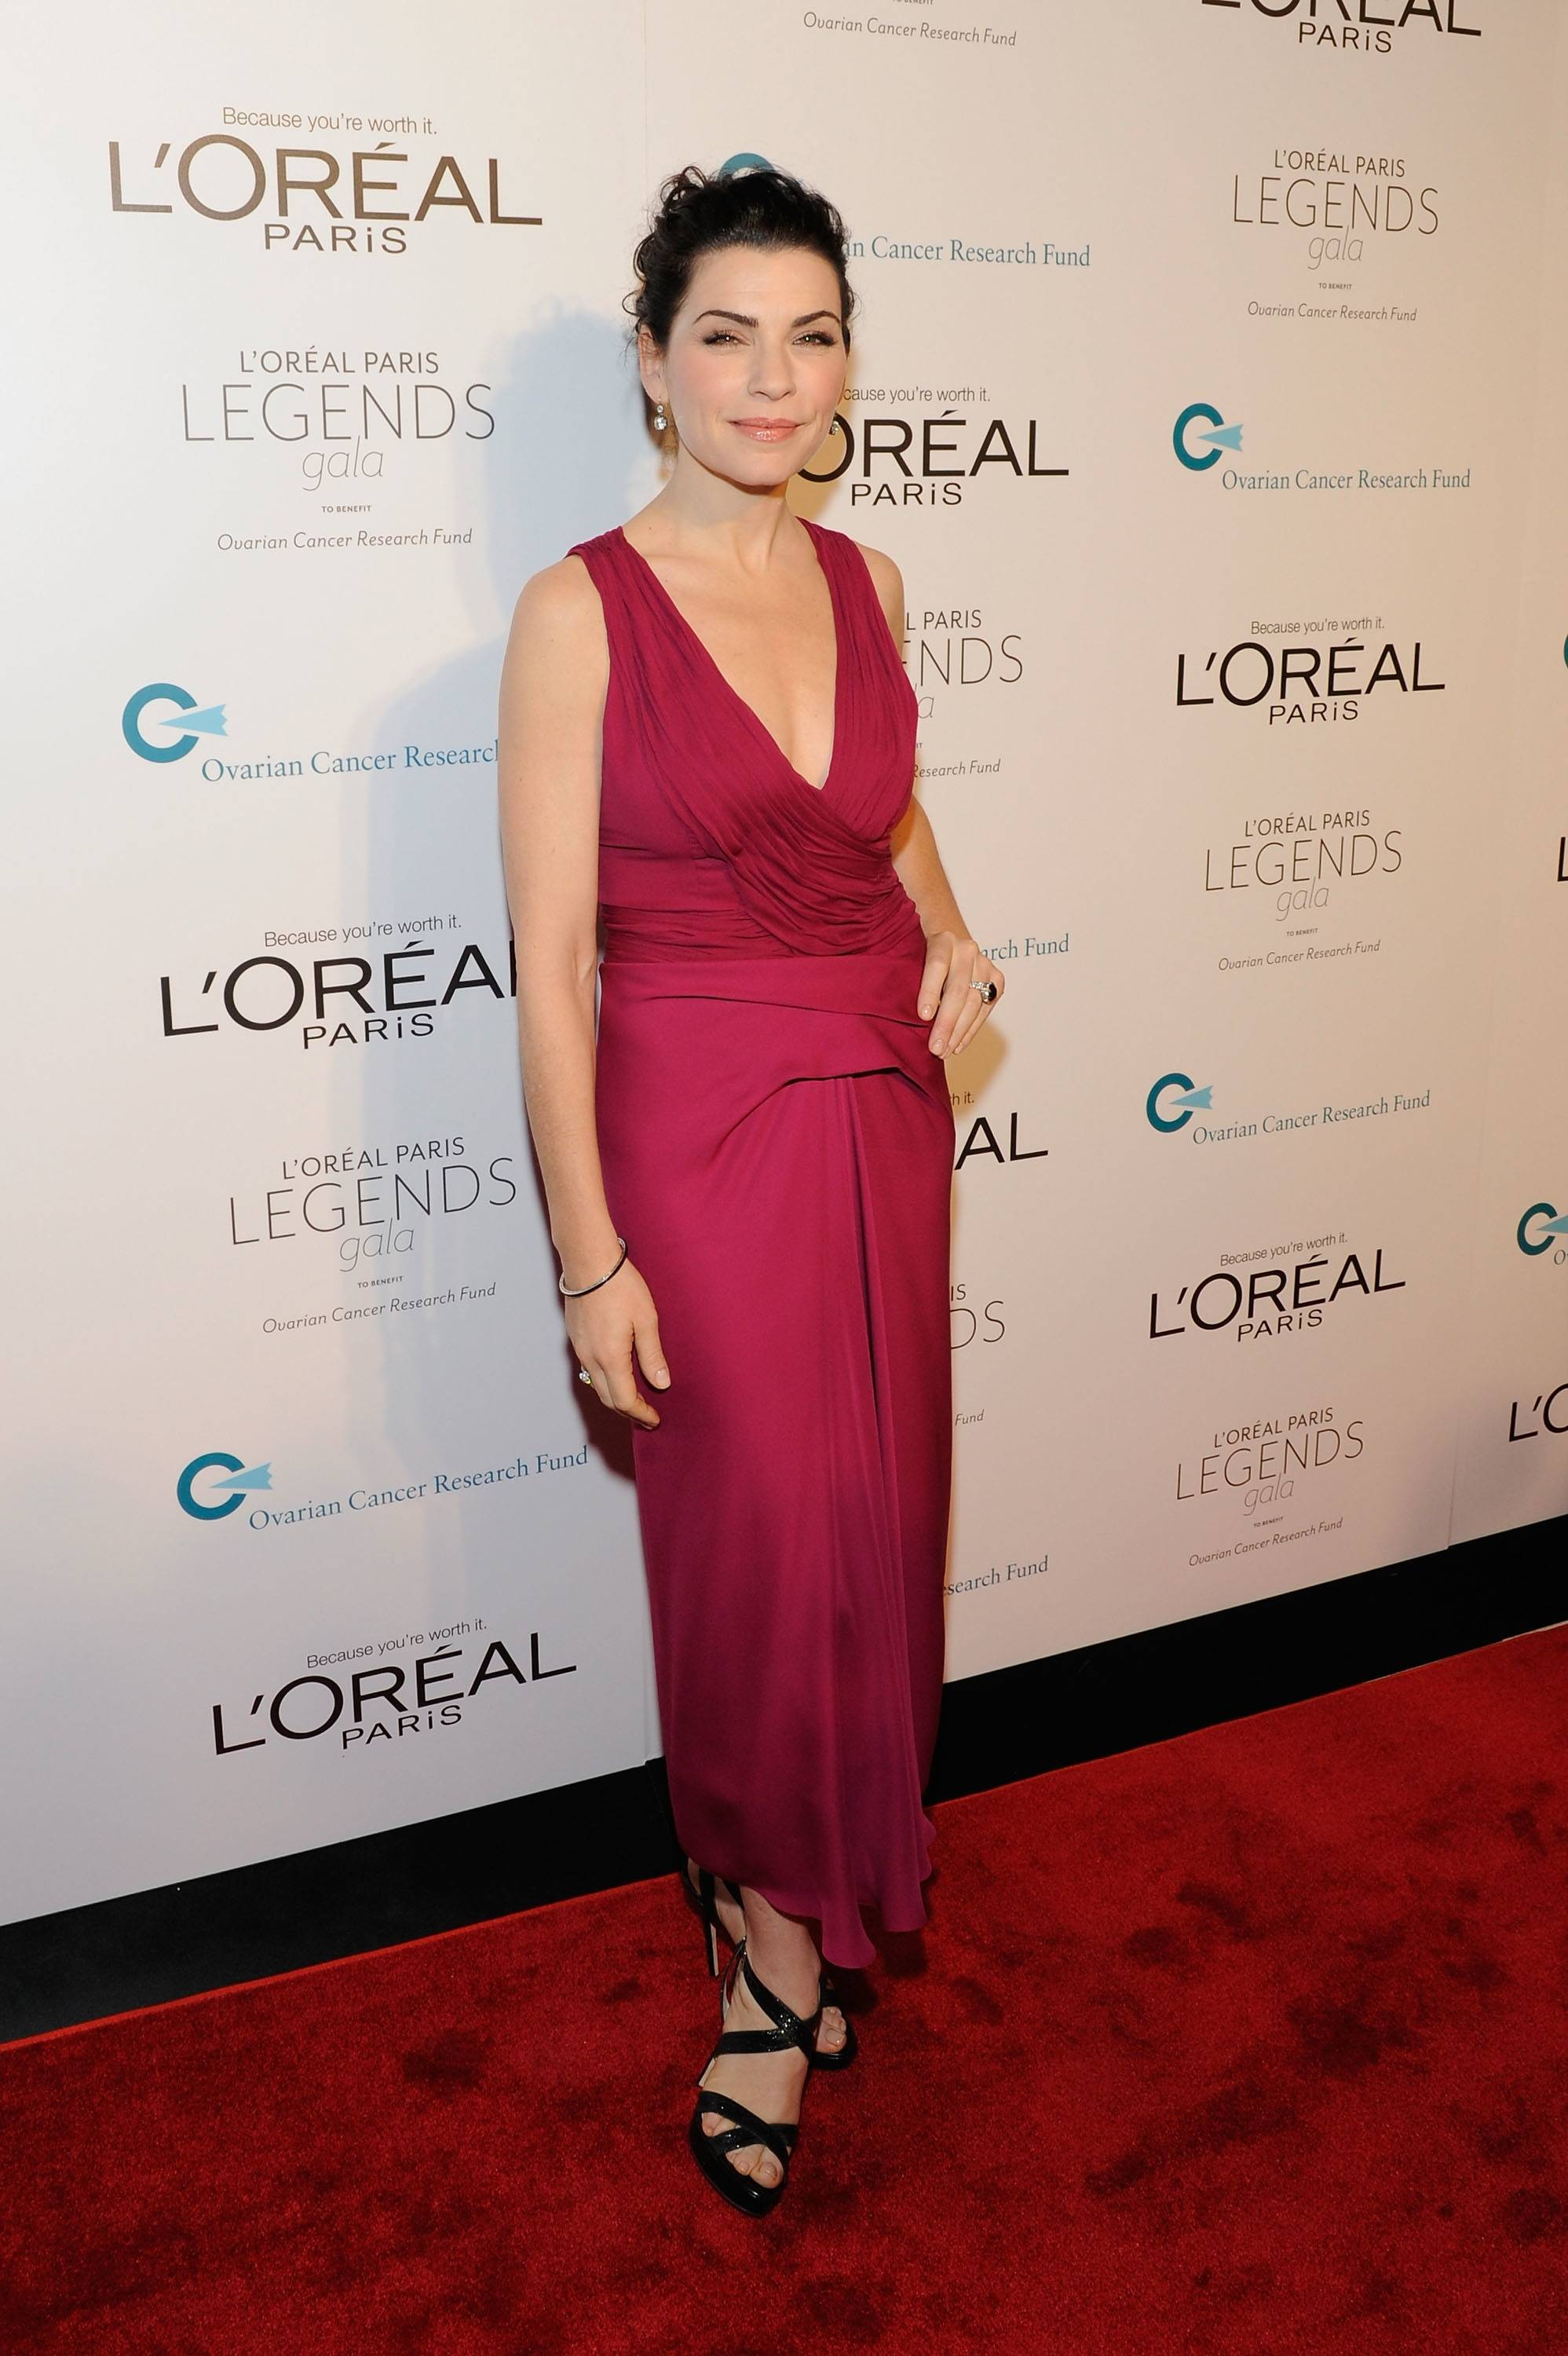 HAUTE EVENT: L'ORÉAL PARIS LEGENDS GALA TO BENEFIT OVARIAN CANCER RESEARCH FUND